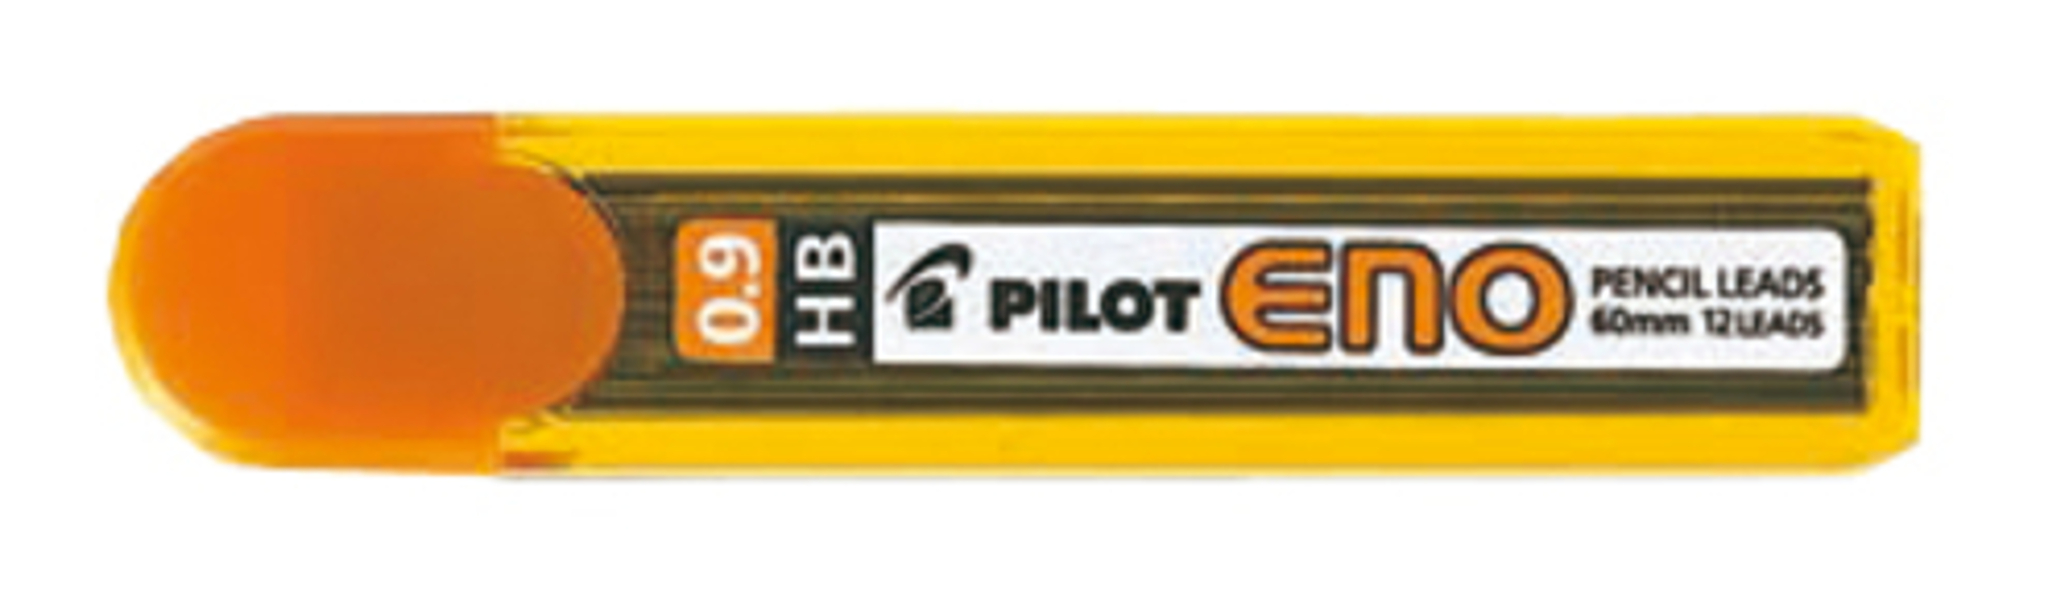 Stift Pilot Eno 0.9Mm Hb 12/Tub